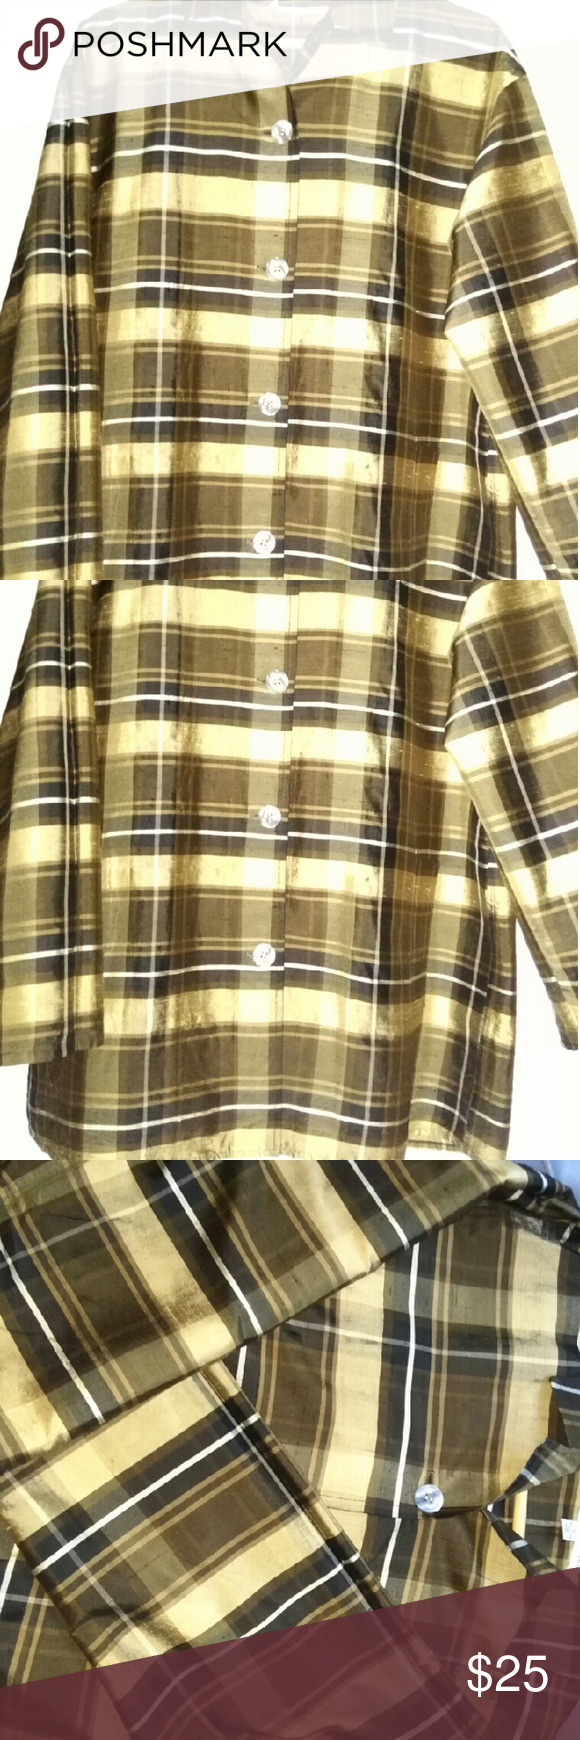 """EUC 100% silk beautiful swing lightweight jacket Worn 2X for a few hours.  Beautiful & Unique lightweight silk jacket. Long sleeves can be rolled up for a casual look.  Baby doll oversized style. Size S but would fit anywhere between XS to M due to style.  Details and quality are amazing, pearl buttons - pic don't do justice!  Dry clean or gentle cycle machine wash. 20"""" shoulder when flat, 30"""" long.    Smoke free. Gruppo Americano Jackets & Coats Pea Coats"""